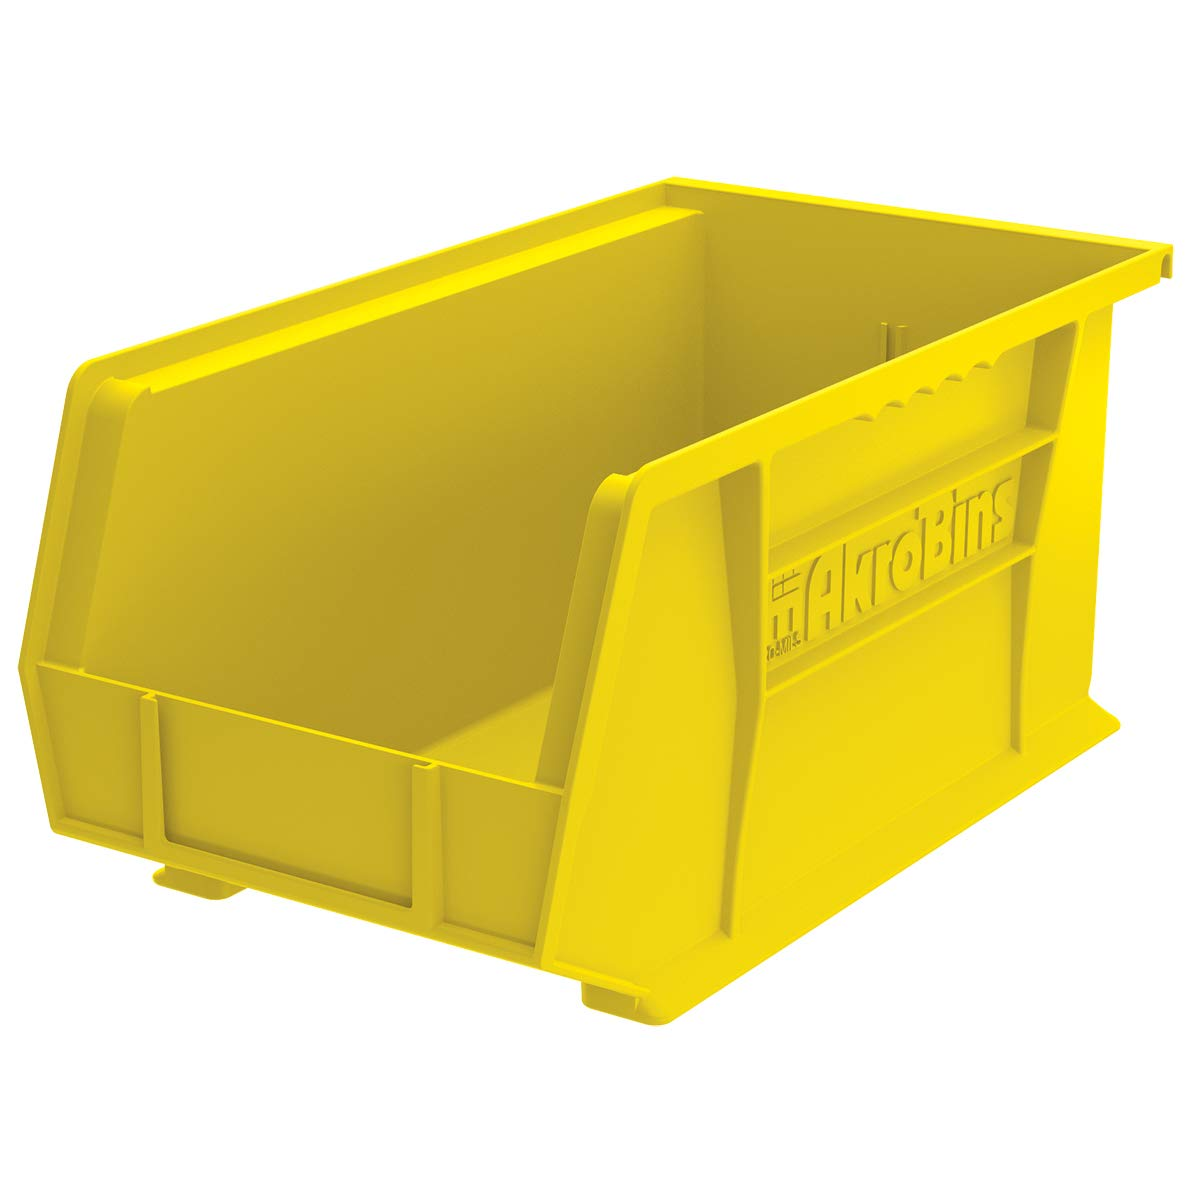 Akro-Mils 30240 AkroBins Plastic Storage Bin Hanging Stacking Containers, (15-Inch x 8-Inch x 7-Inch), Yellow, (12-Pack)